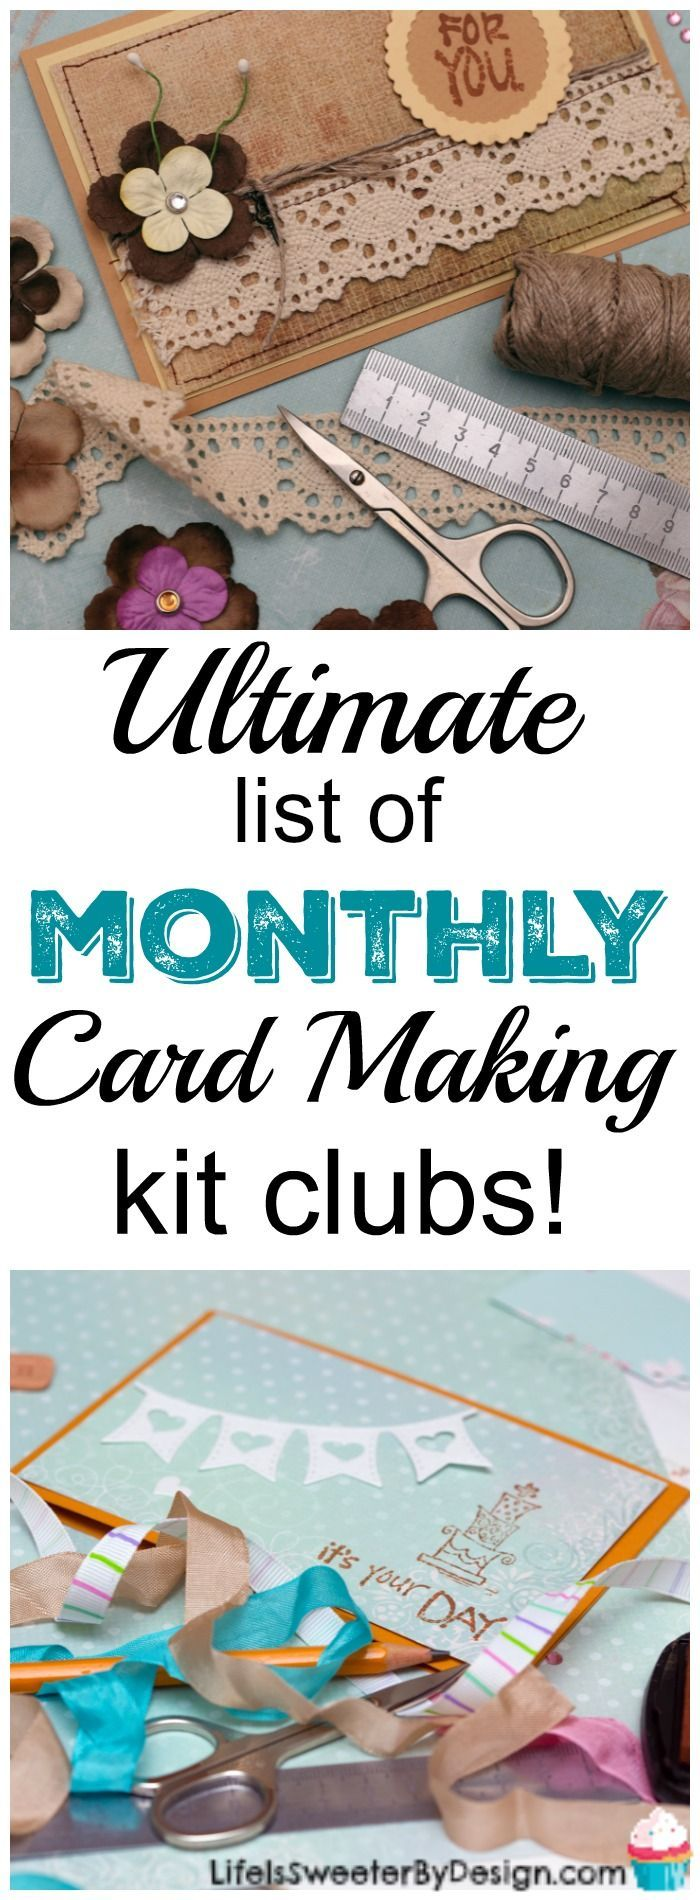 Ultimate List of Monthly Card Making Kit Clubs available for paper crafters! These monthly card making kits are awesome and a great way to get more cards made!